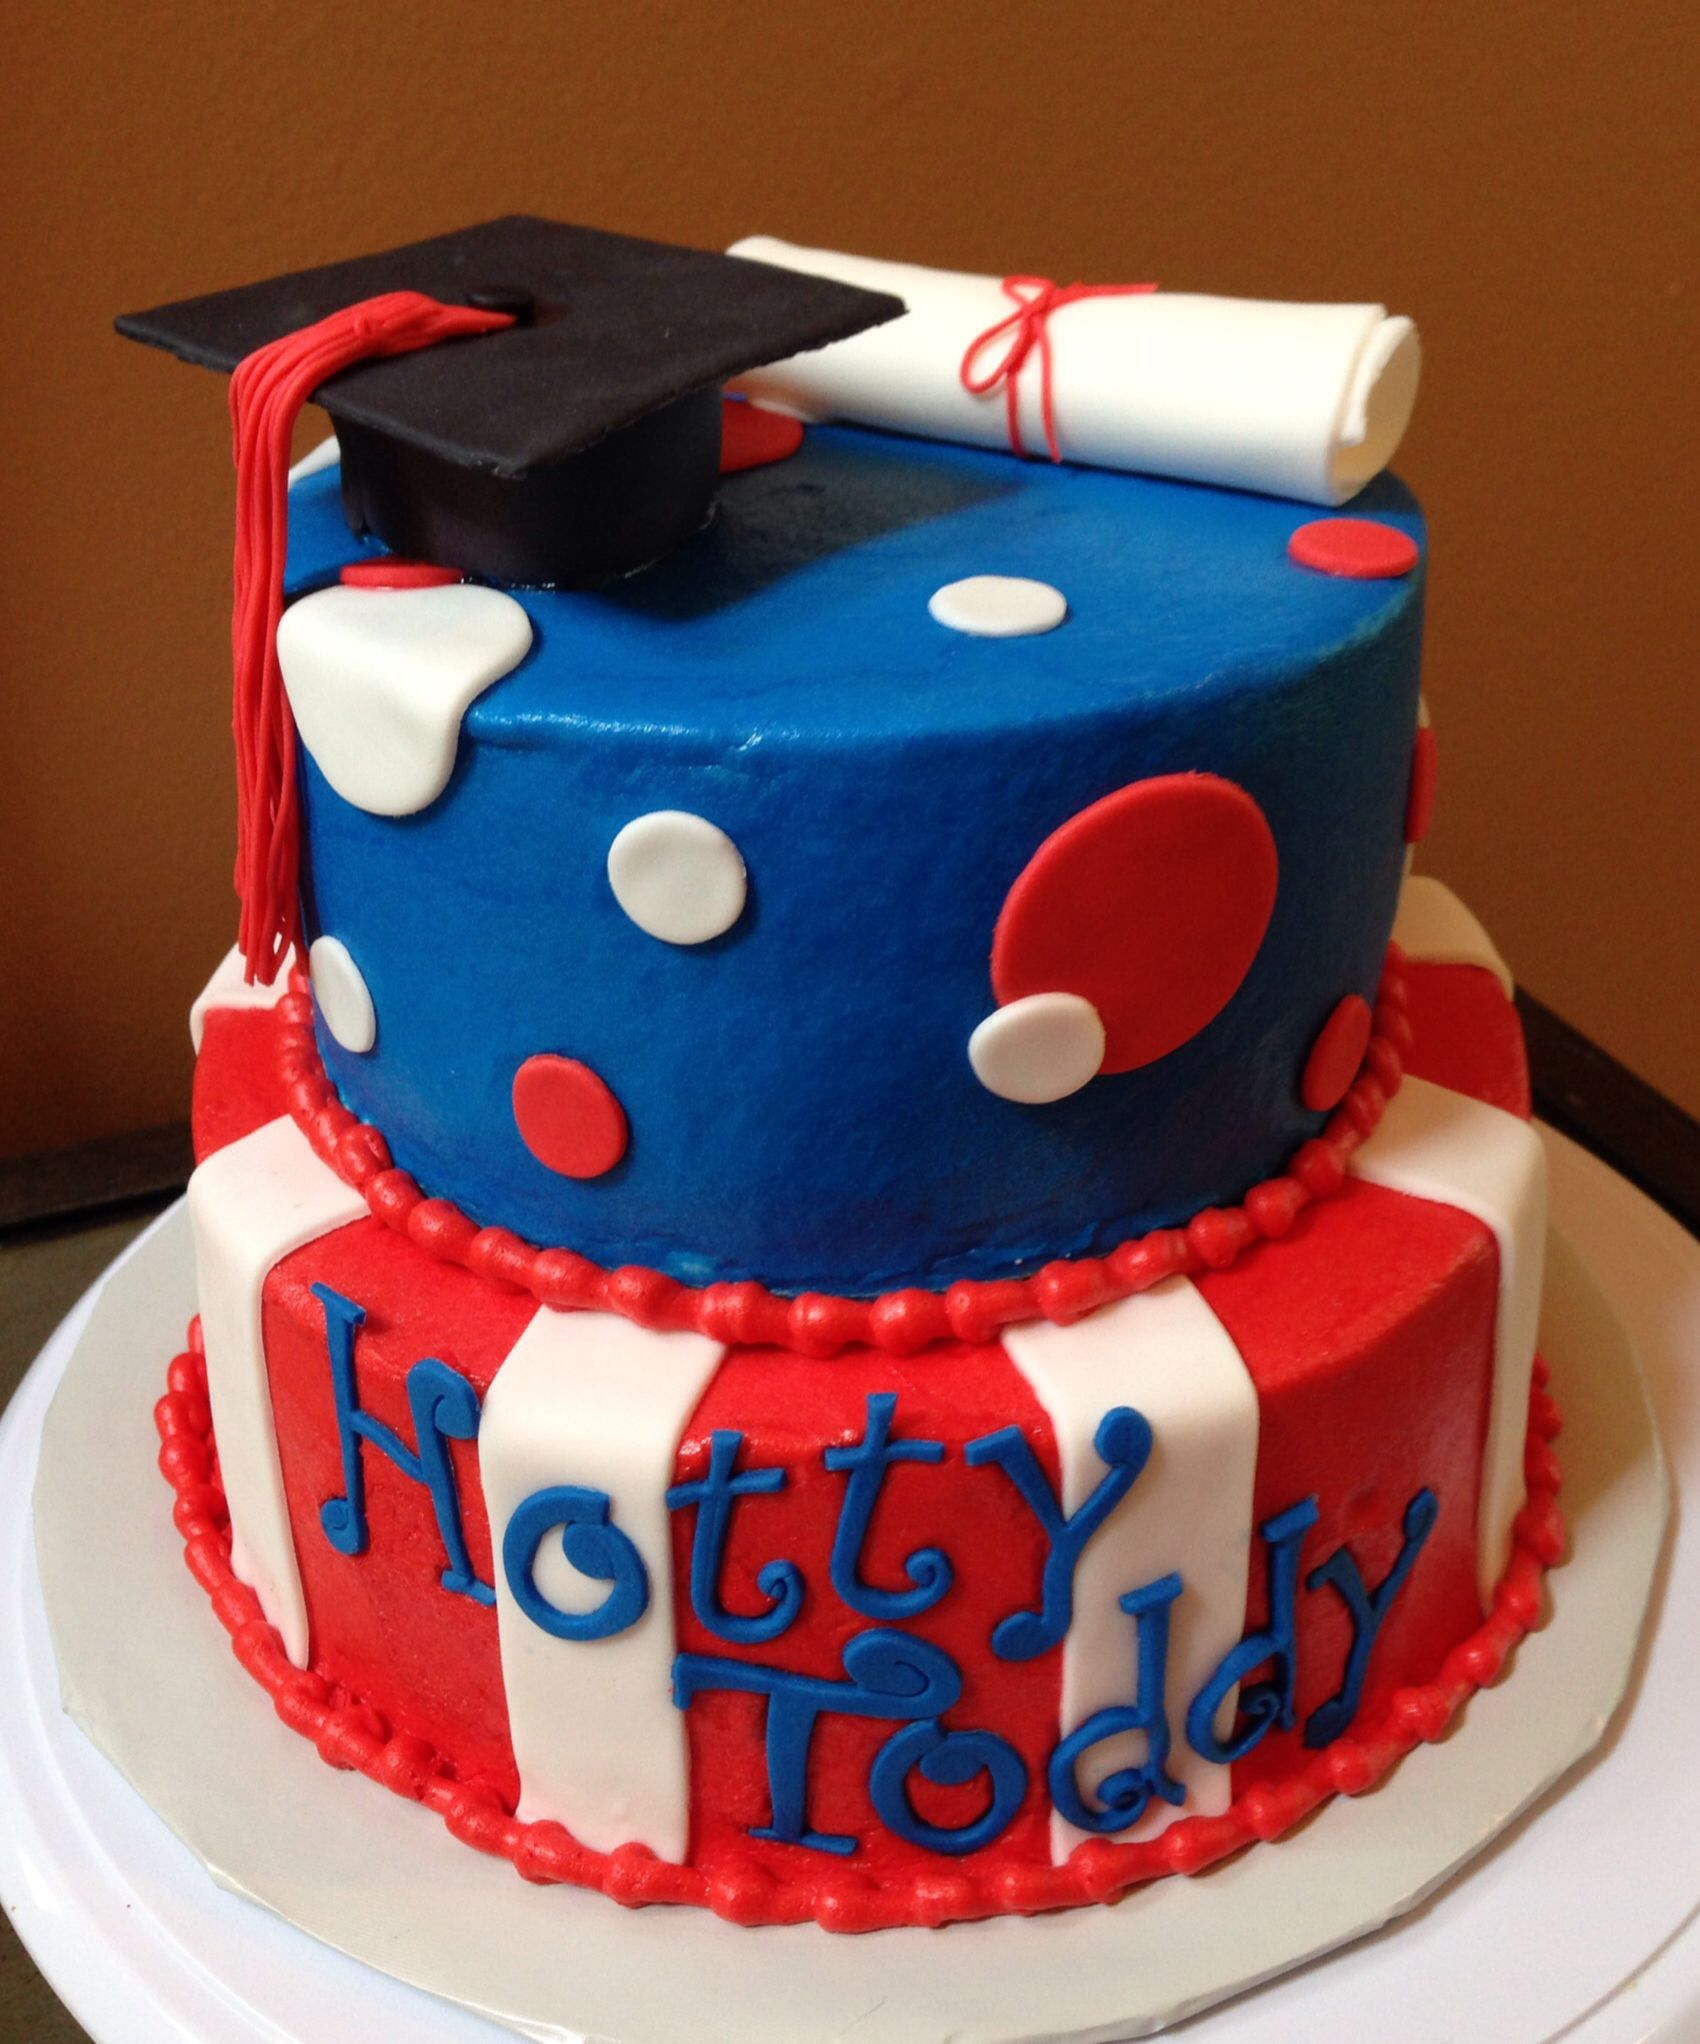 Hotty Toddy Ole Miss Graduation Cake